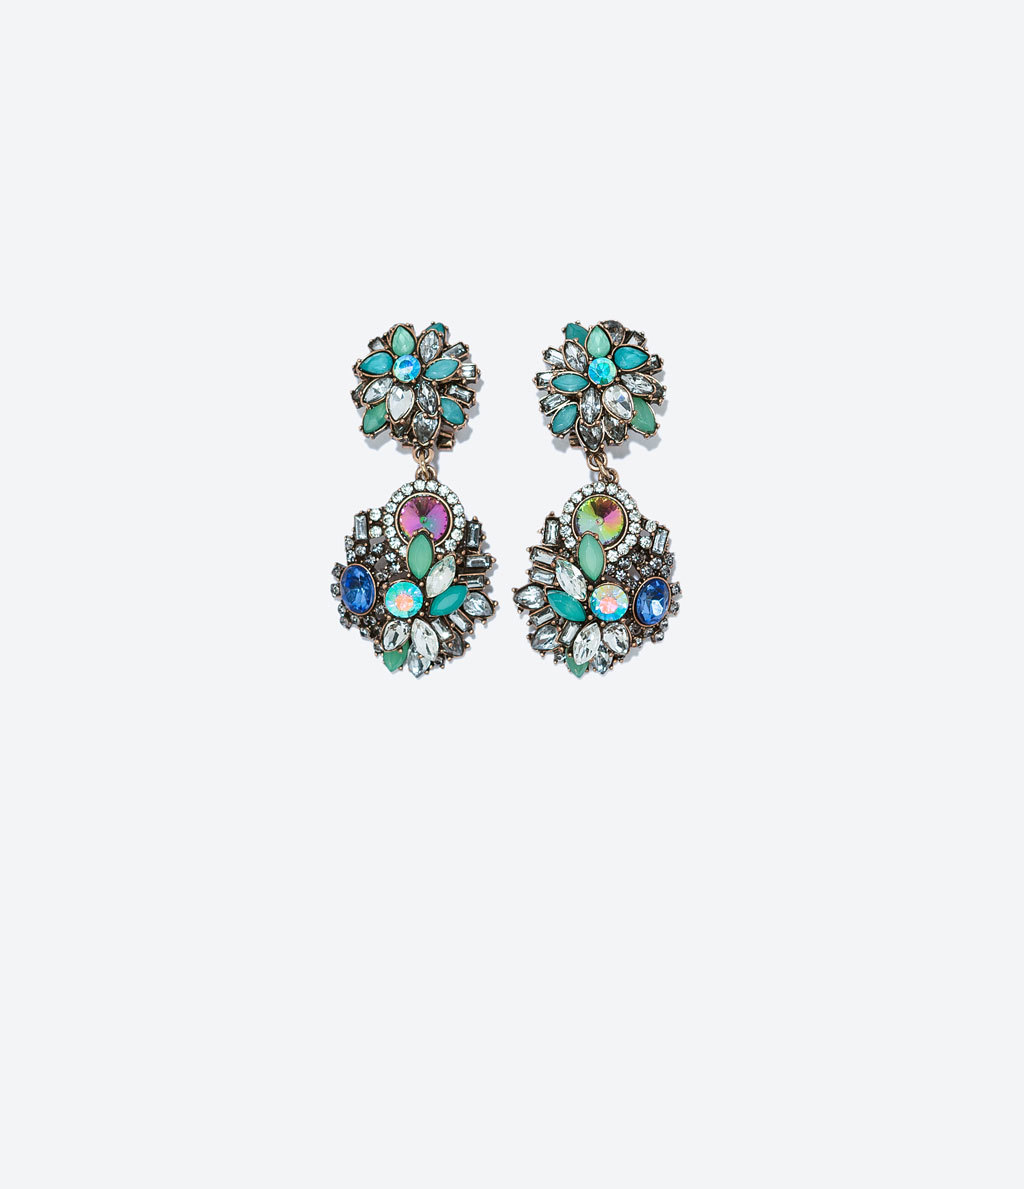 Jewel Earrings - occasions: evening, occasion, creative work; predominant colour: multicoloured; style: drop; length: mid; size: standard; material: chain/metal; fastening: pierced; finish: metallic; embellishment: jewels/stone; season: a/w 2014; multicoloured: multicoloured